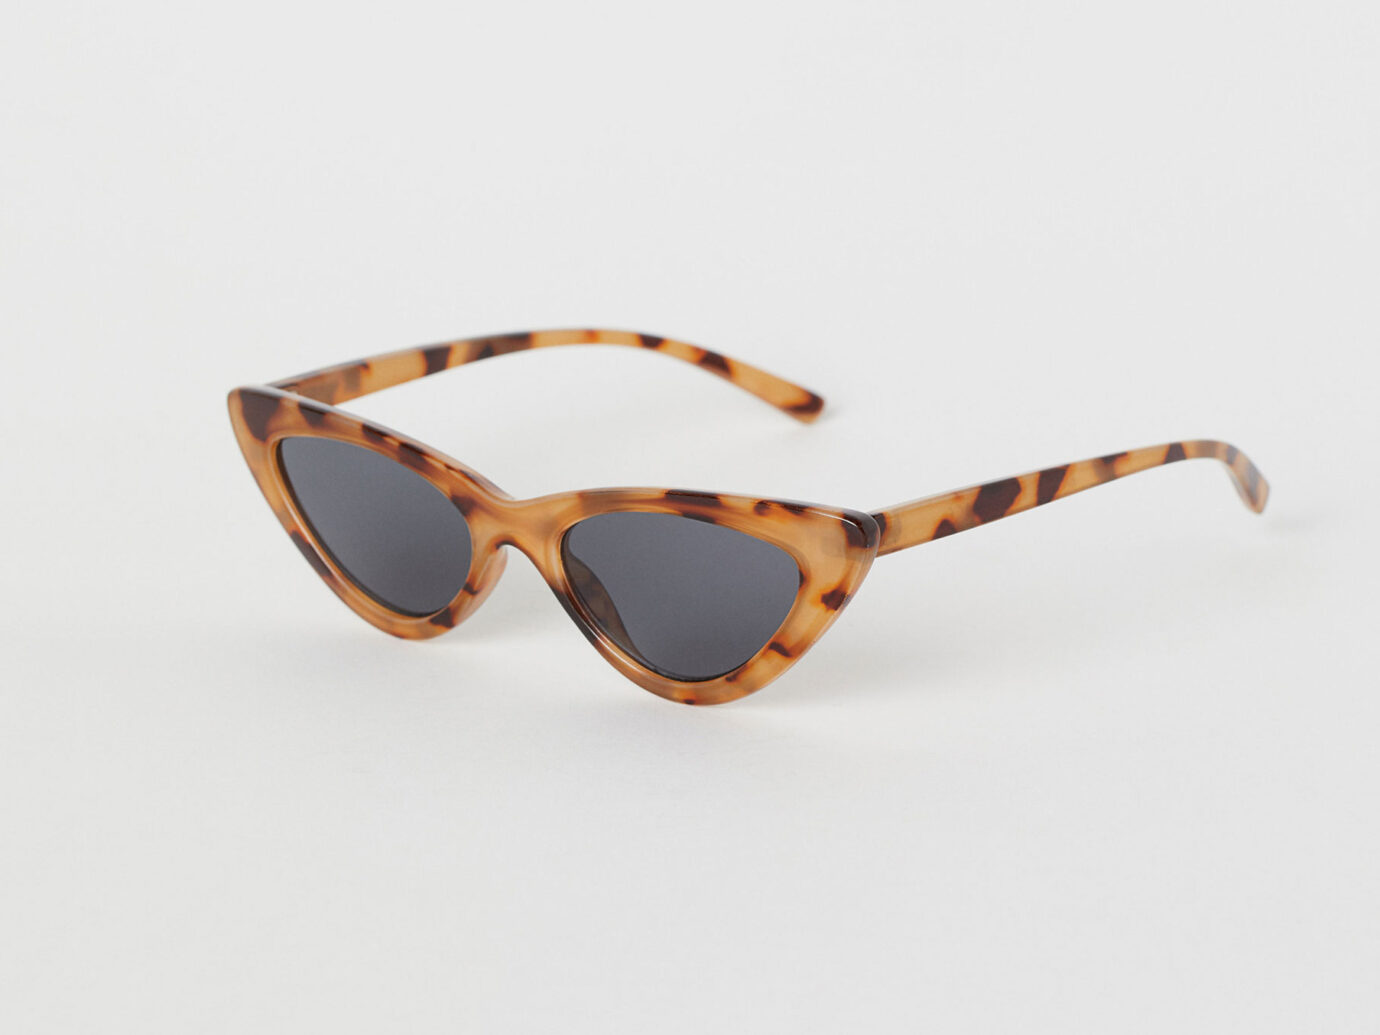 H&M Cat-Eye Sunglasses